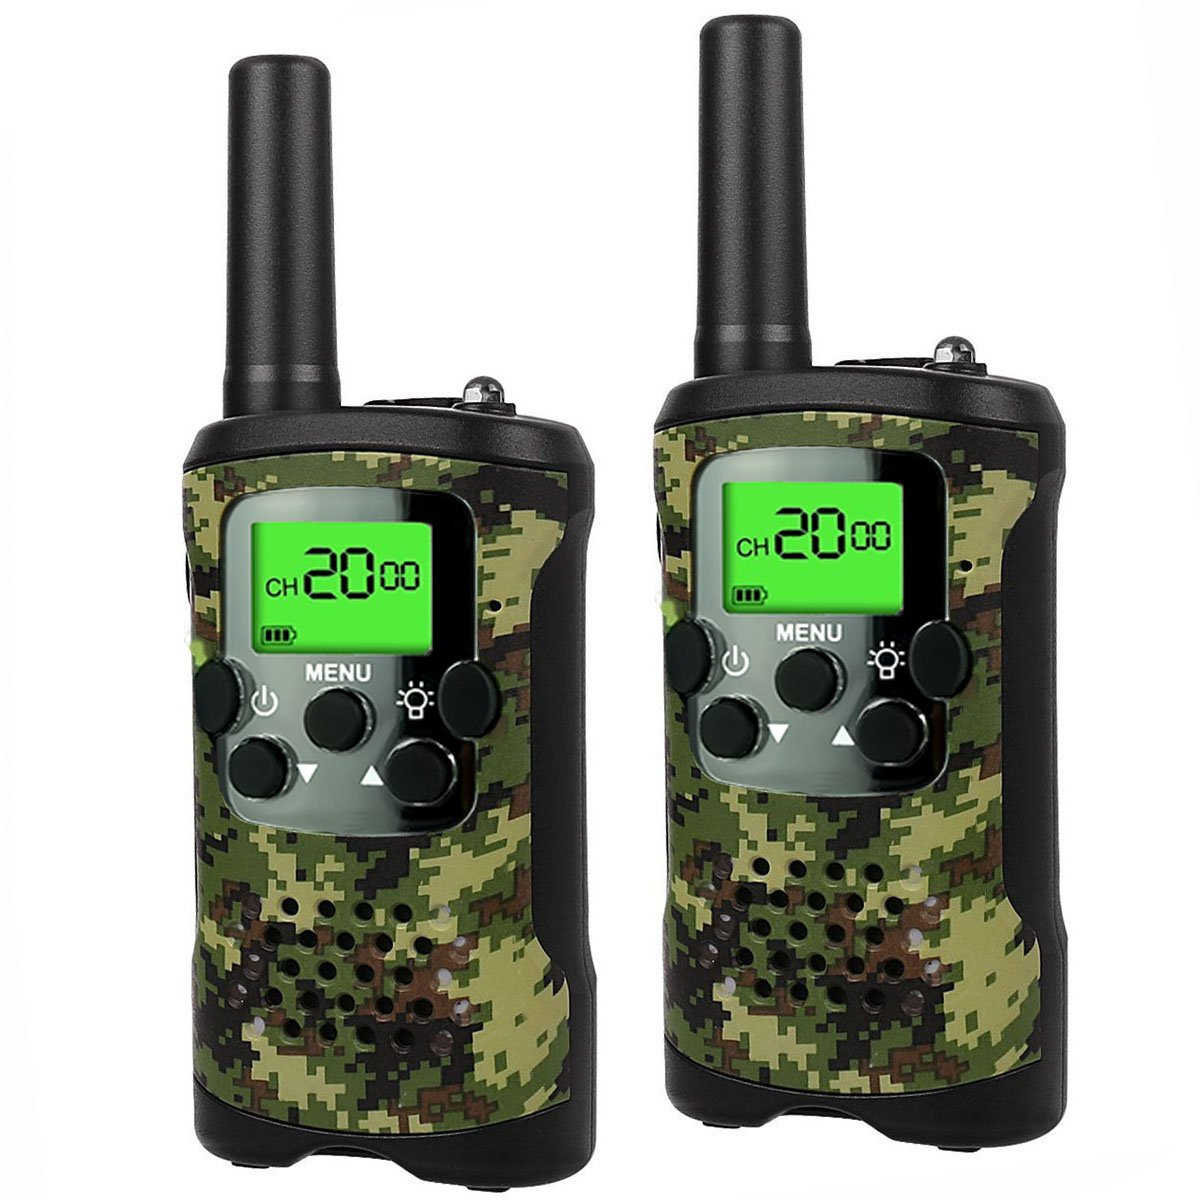 DIMY Toys Gifts 3-12 Year Old Boys Girls Teen Walkie Talkies Kids Long Range Birthday Presents Outdoor Outside Toys DJ01, Green